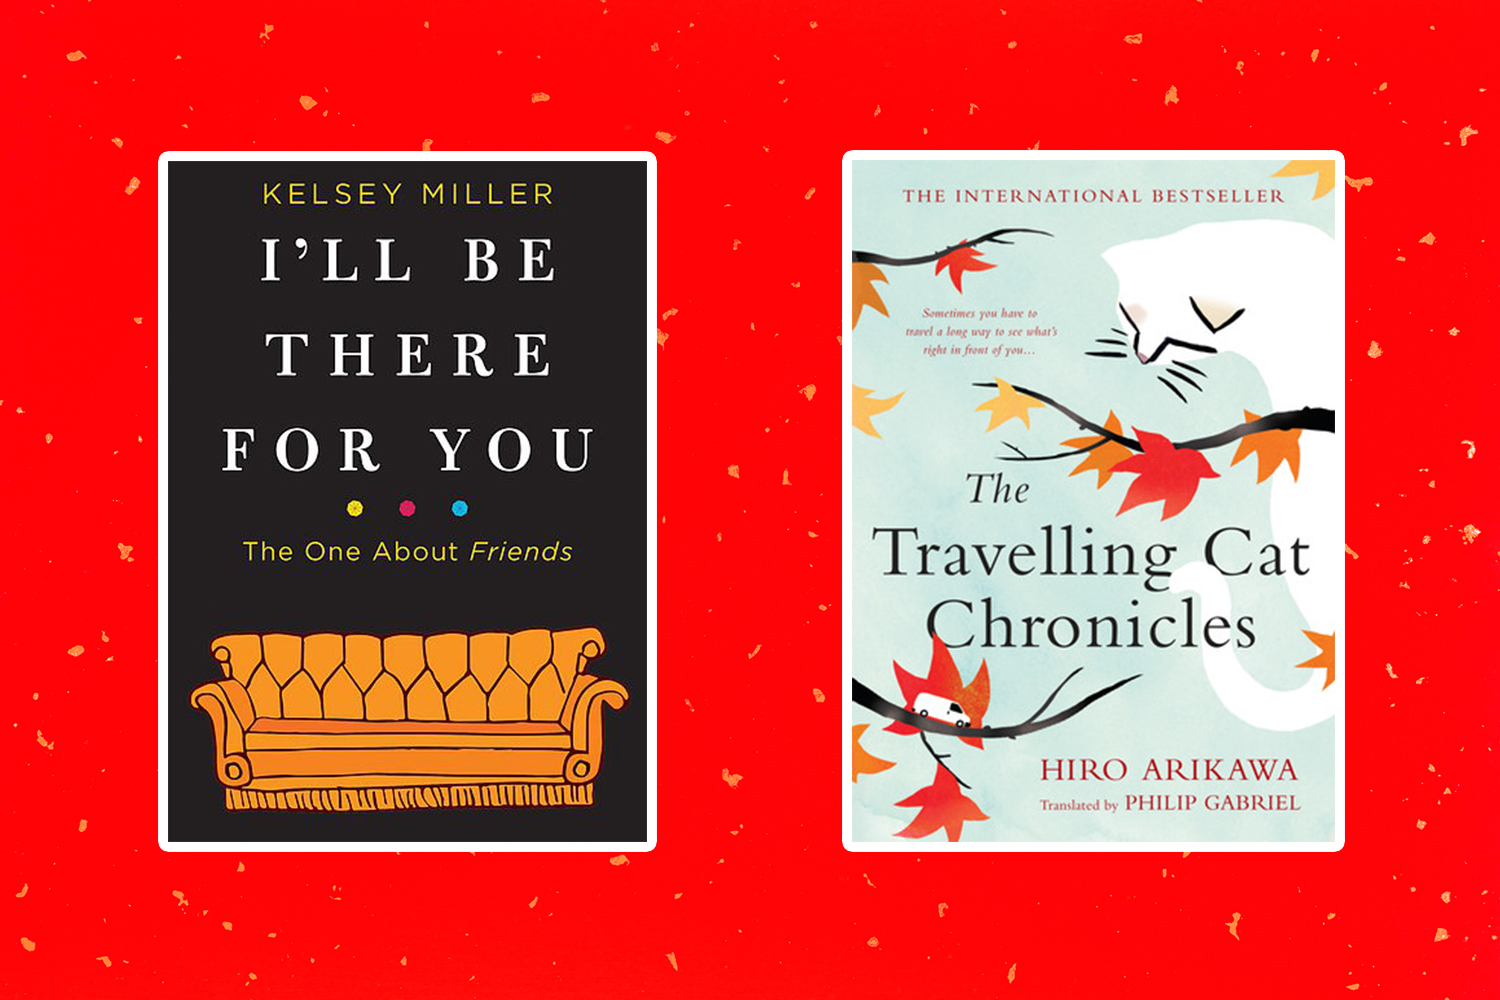 Books coming out this week: <em>I'll Be There for You</em>, <em>The Travelling Cat Chronicles</em>, and more